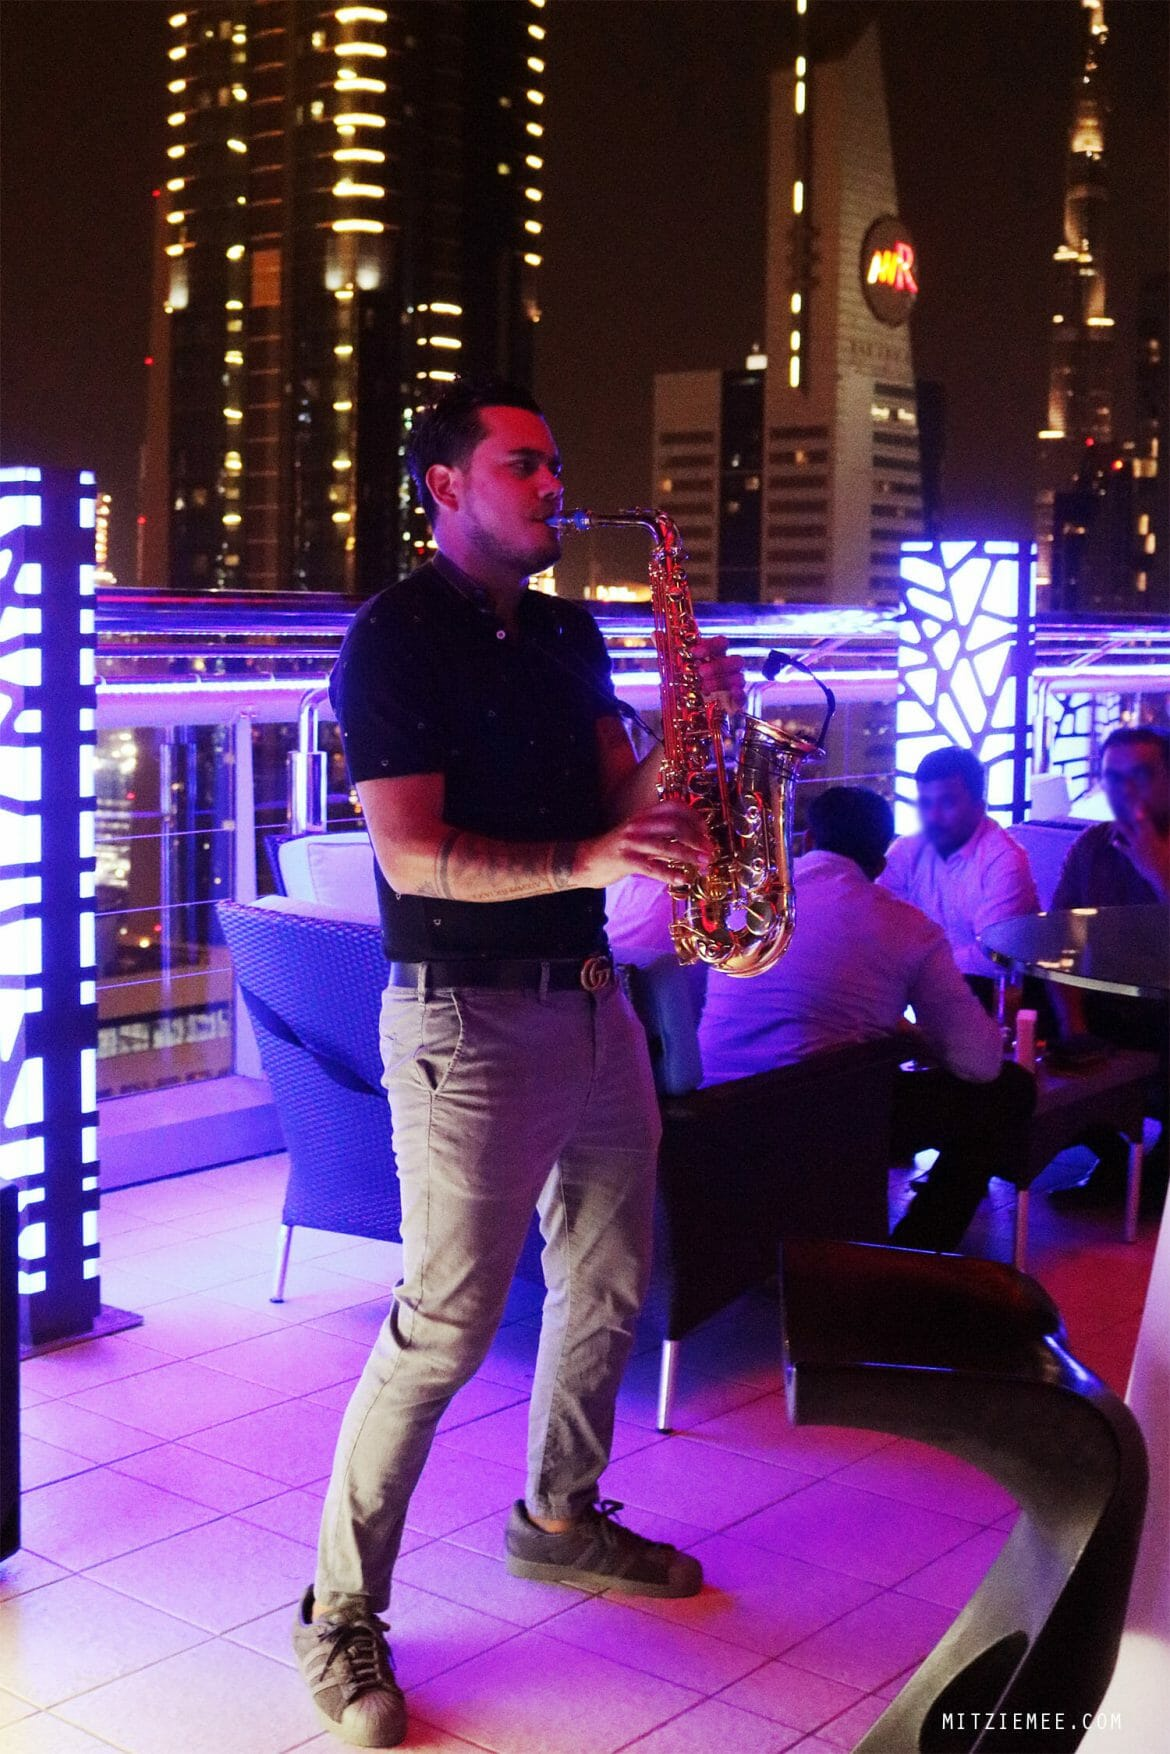 Saxophone night at Level 43, Dubai rooftop bar